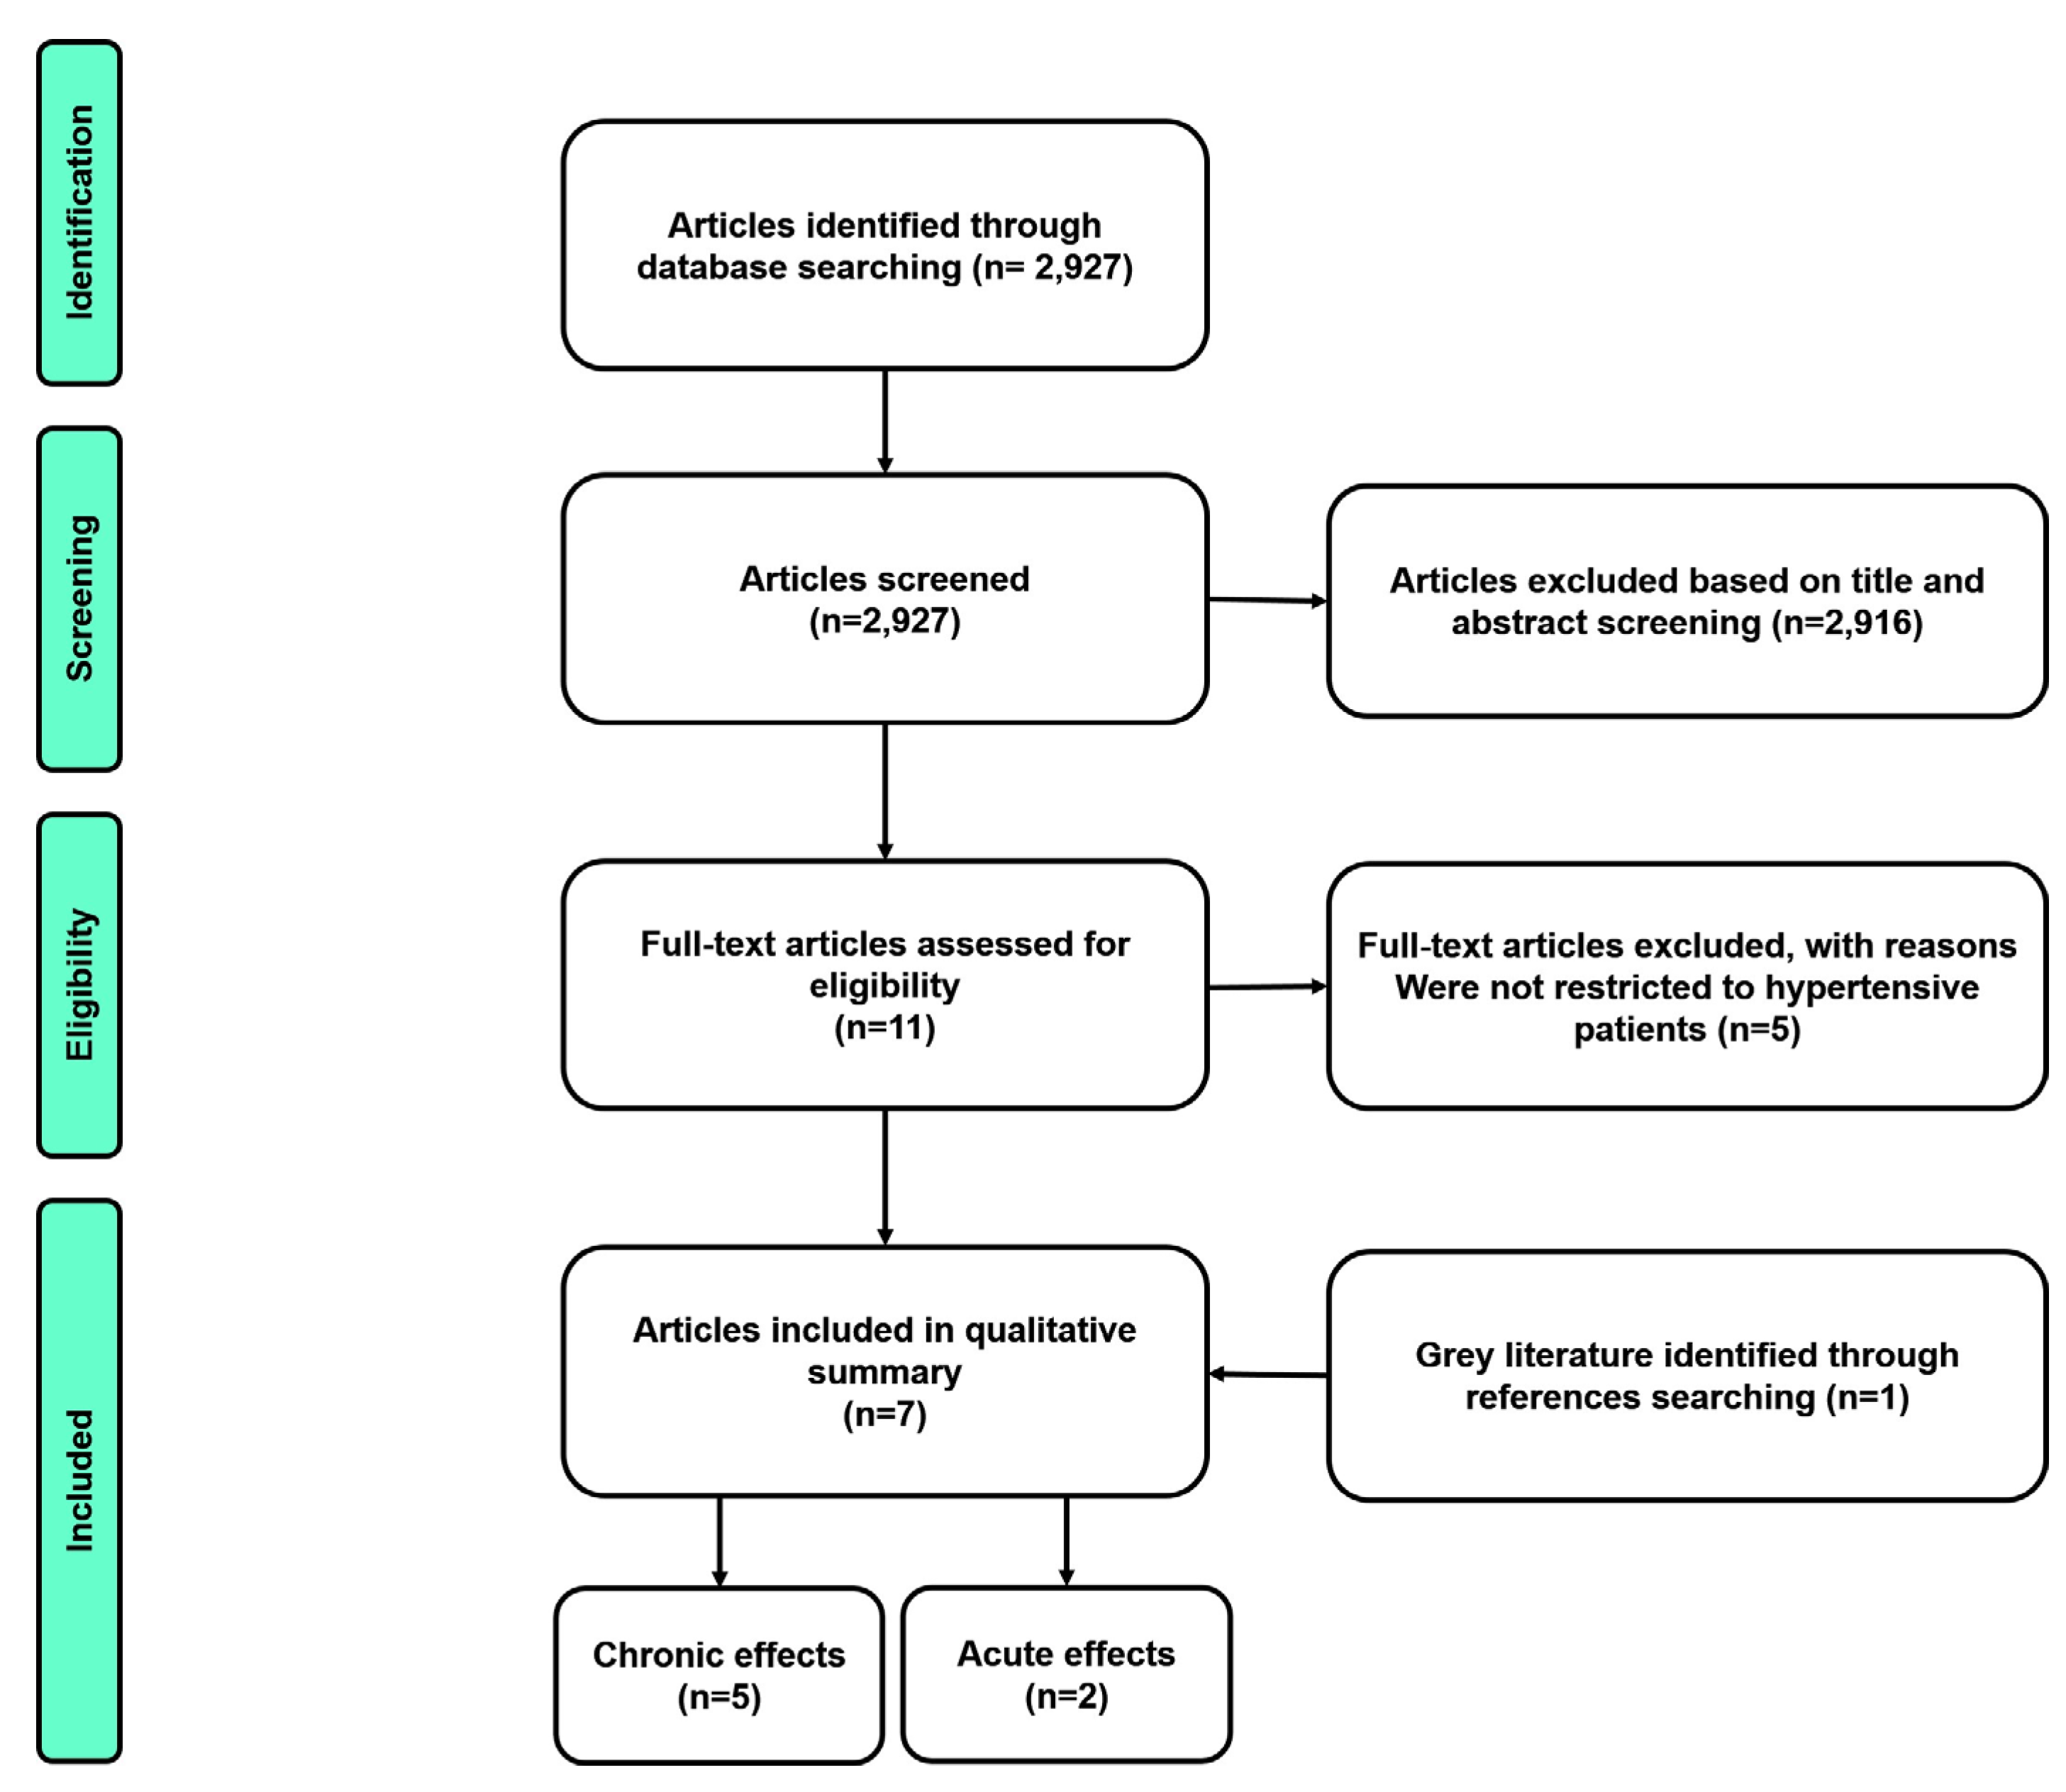 muscle training intervention in heart failure article review Special article exercise-based rehabilitation for patients with coronary heart disease: systematic review and meta-analysis of randomized controlled trials.